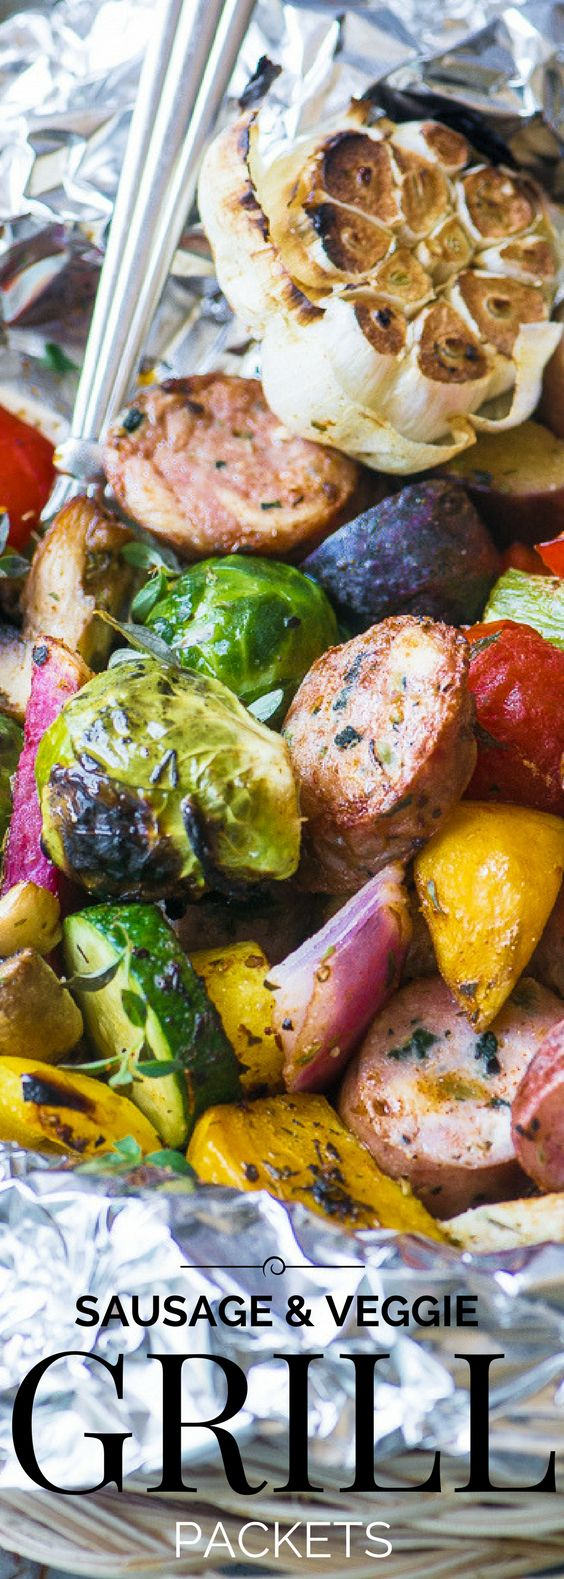 Sausage and Veggie Grill Packets ~ here's an easy idea for lazy summer nights...pile your sausage and cut veggies onto a sheet of foil, wrap it up, and throw it on the grill ~ dinner'll be ready in 30 minutes! | 30 minute meal | summer | barbecue | Grilling | low carb | whole 30 | paleo |